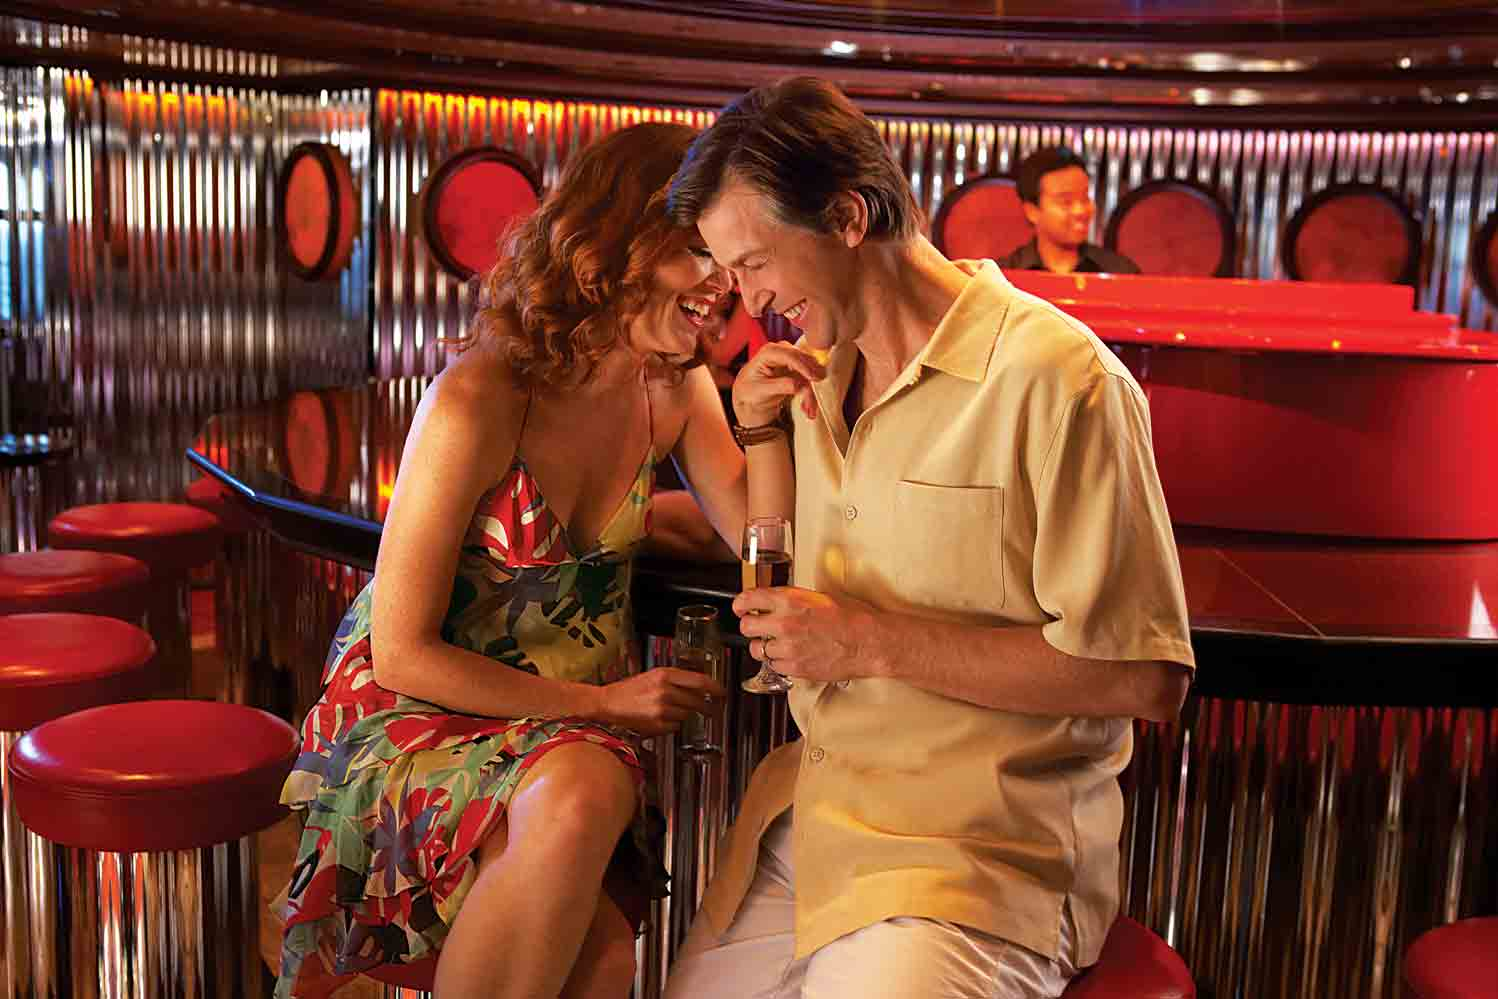 couple at piano bar on a carnival ship